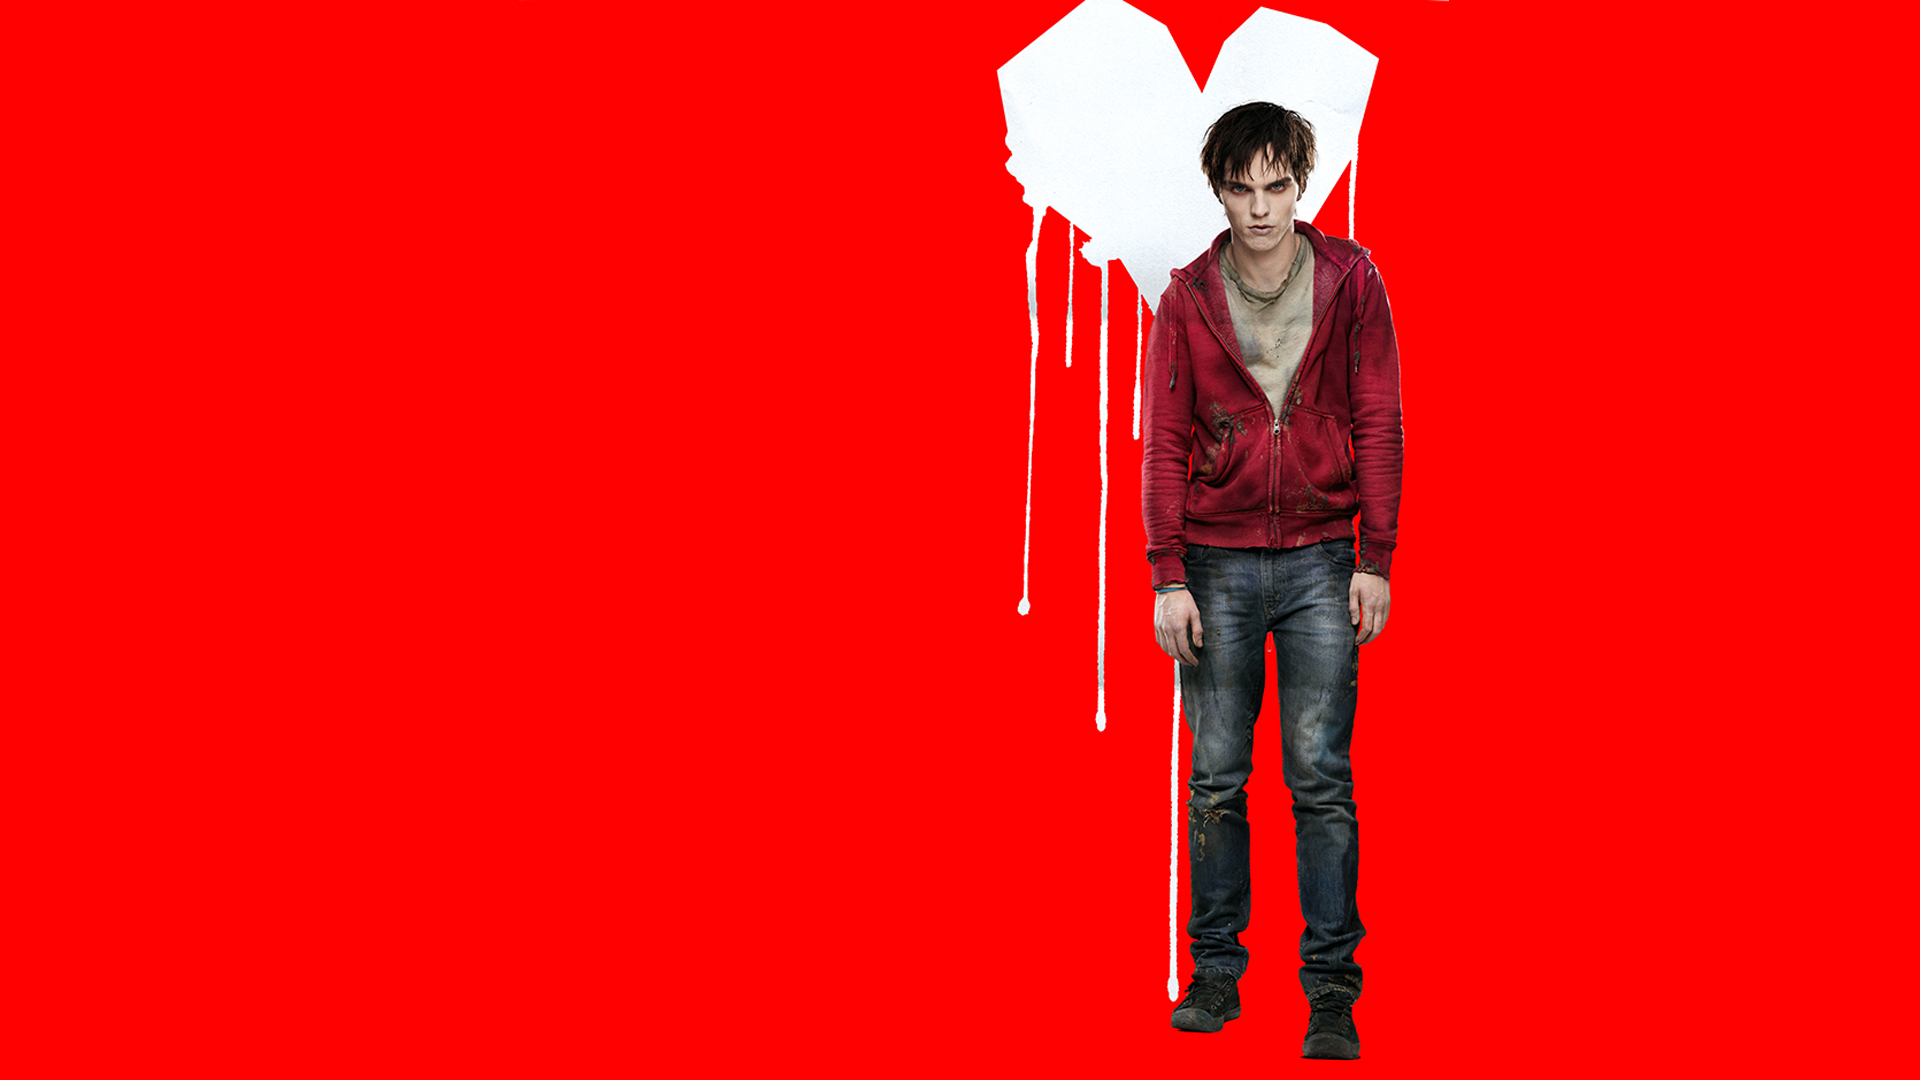 Warm Bodies Full HD Wallpaper and Background Image ...